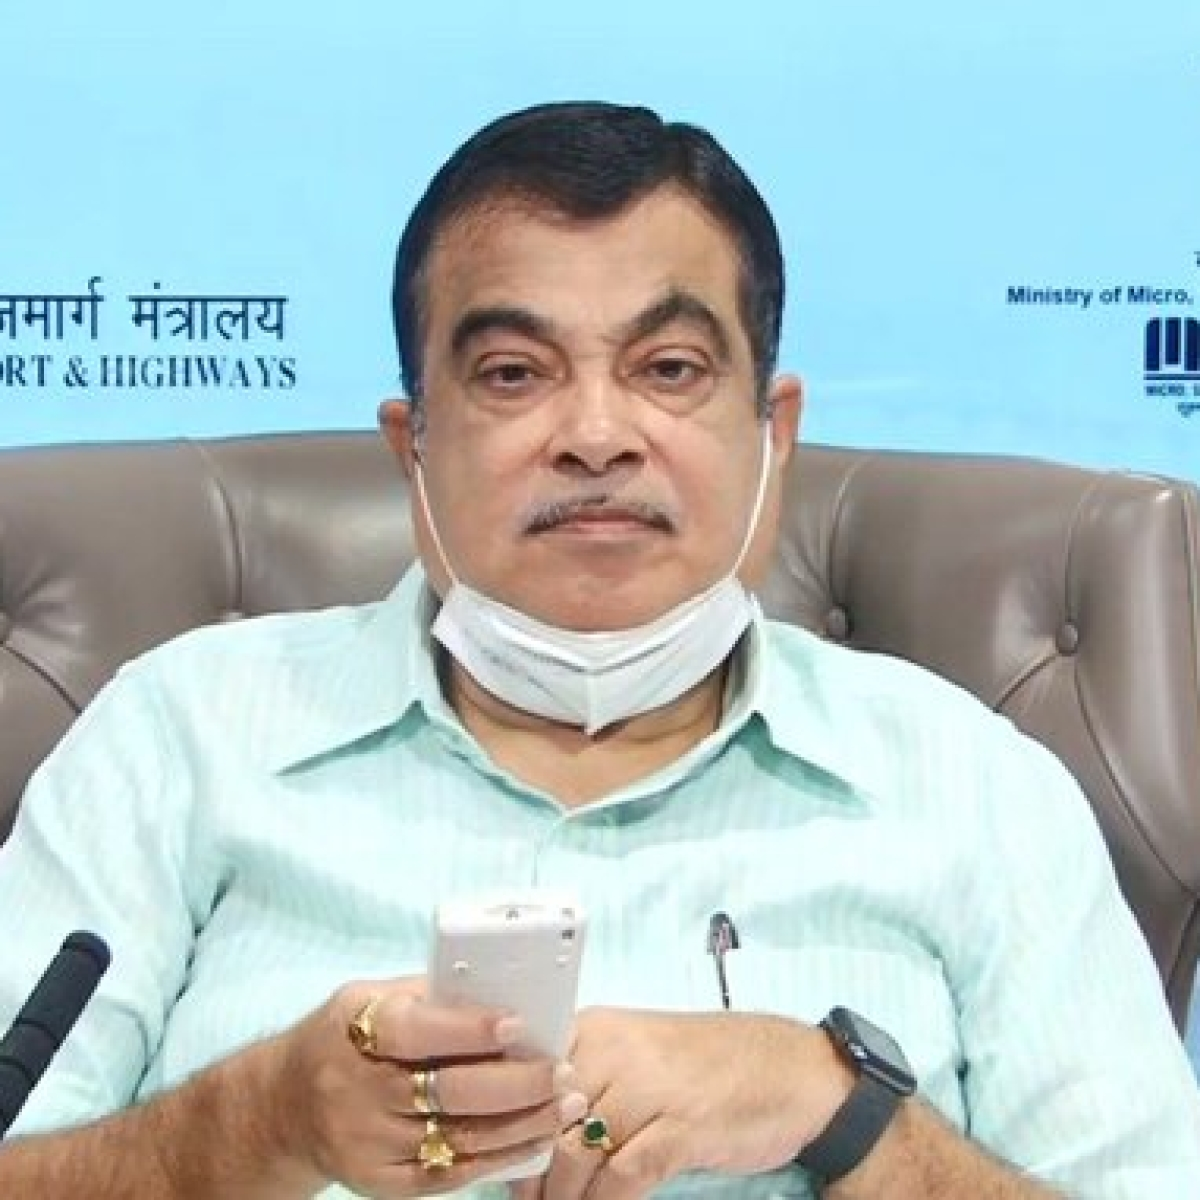 Union Minister Nitin Gadkari lays foundation stone of Rs 3K-cr highway projects in Manipur